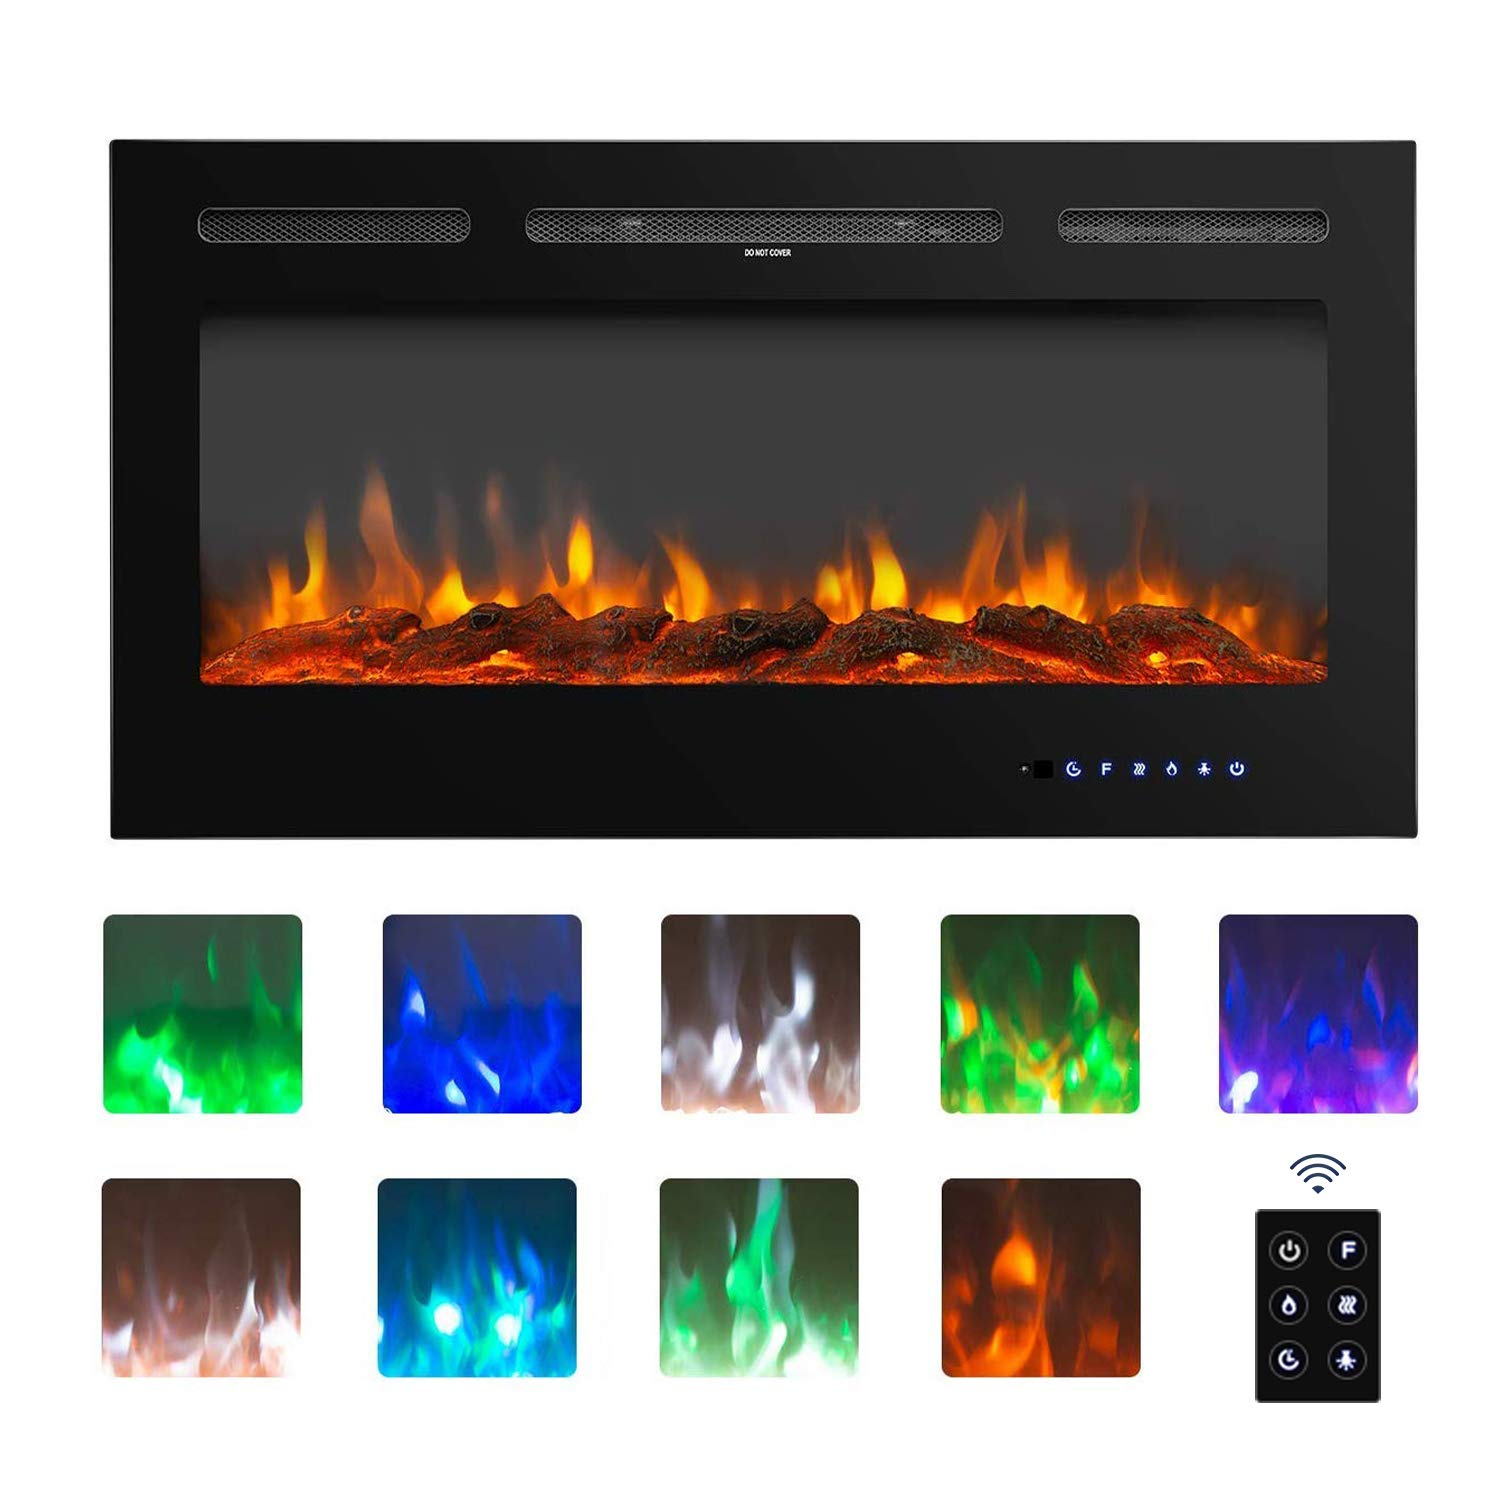 BAHOM 36 Electric Fireplace Heater Insert with TV Stand, Wall Mounted Heater Indoor with 9 Flames, Remote and Thermostat Control, Black